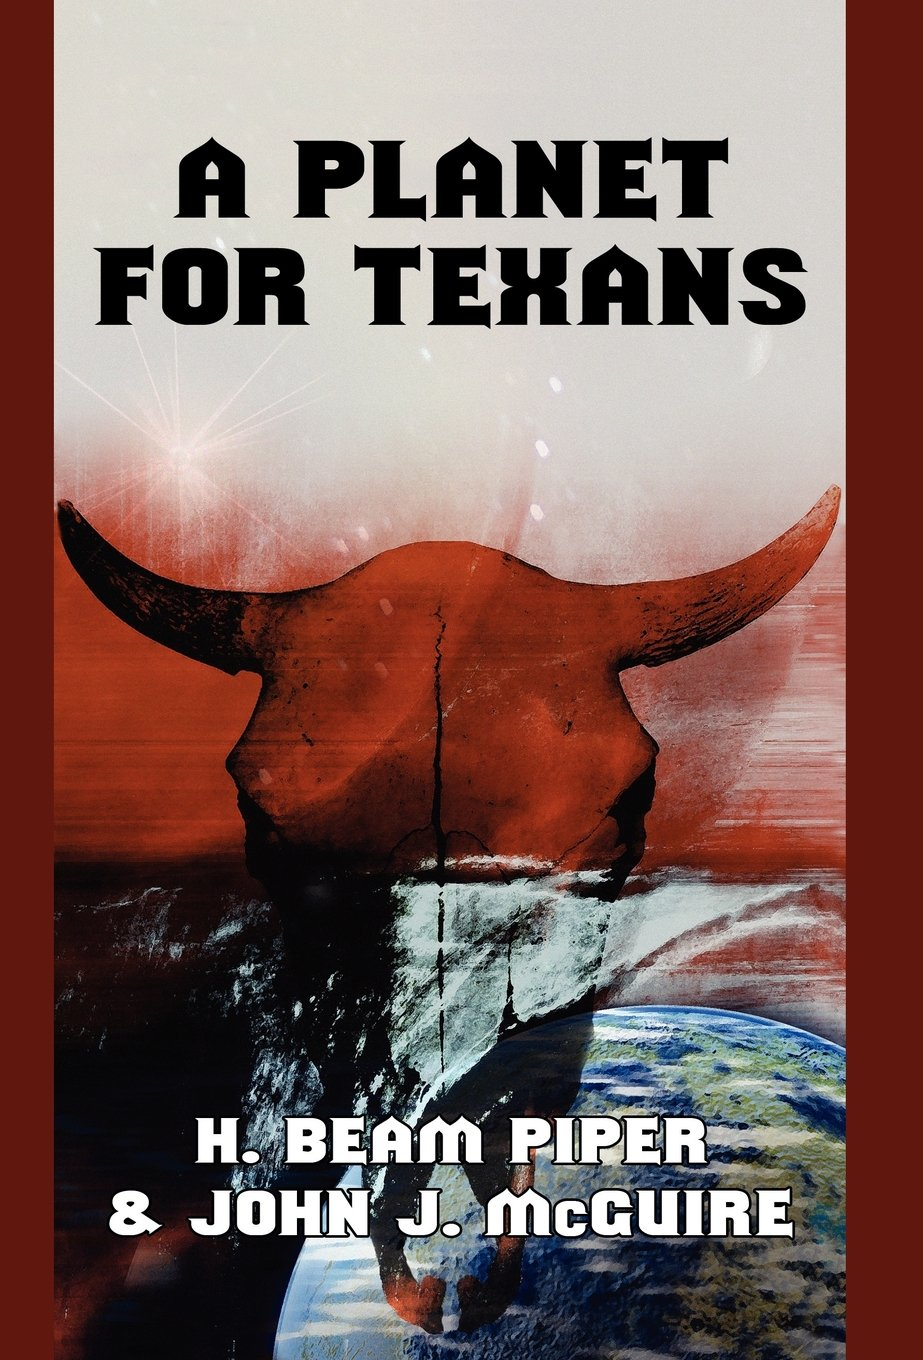 Image - A Planet for Texans by H. Beam Piper & John J. McGuire